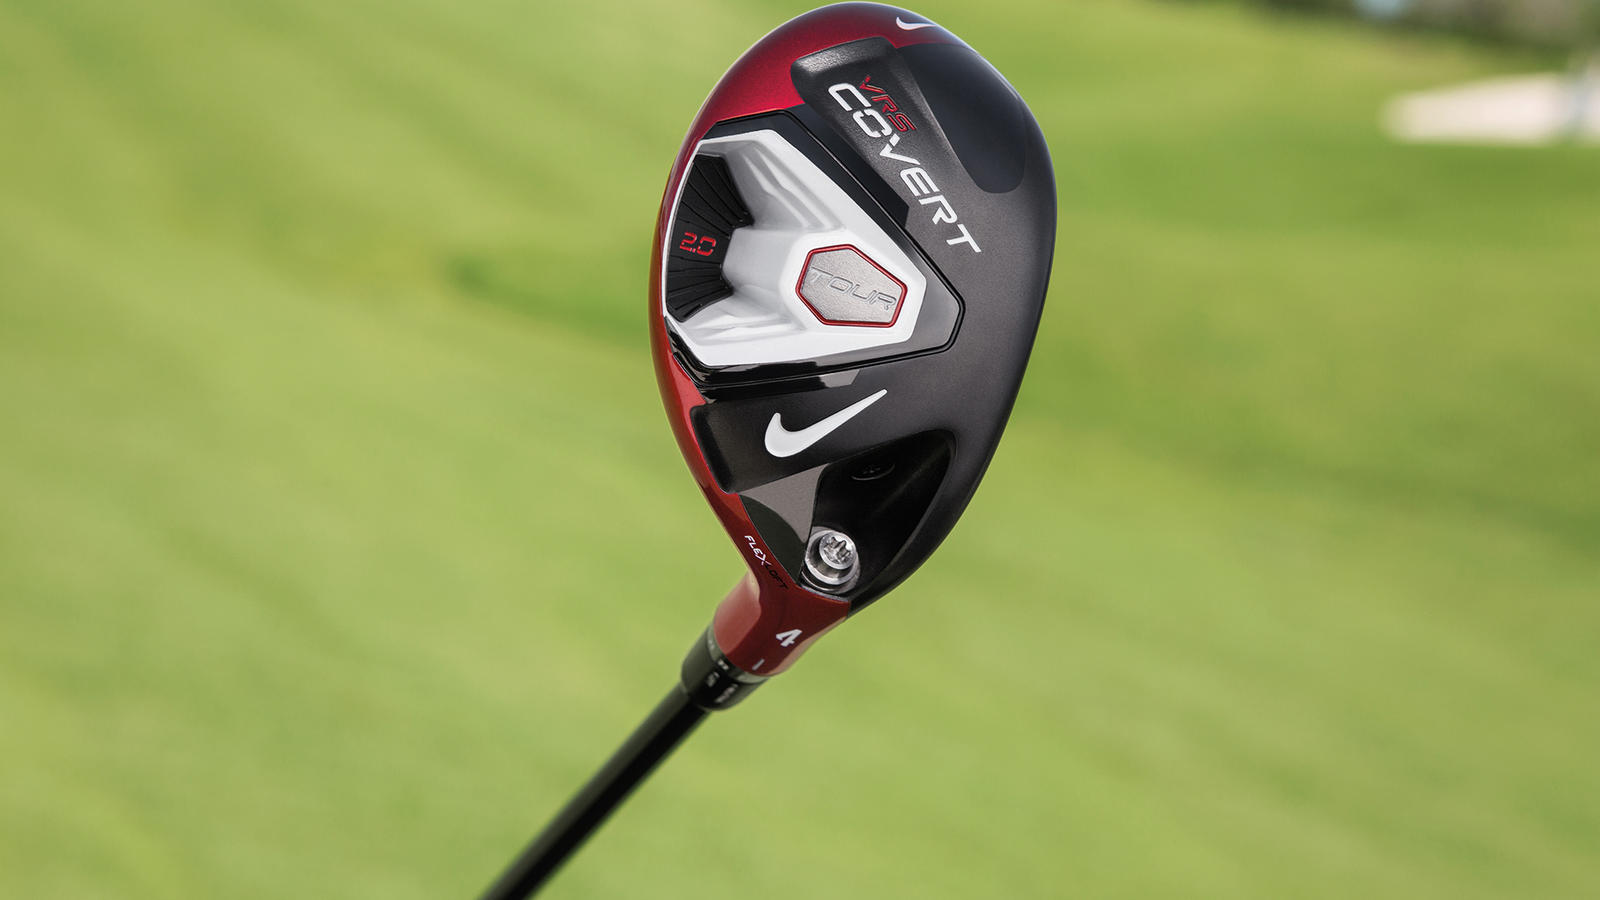 nike covert 2.0 5 wood review